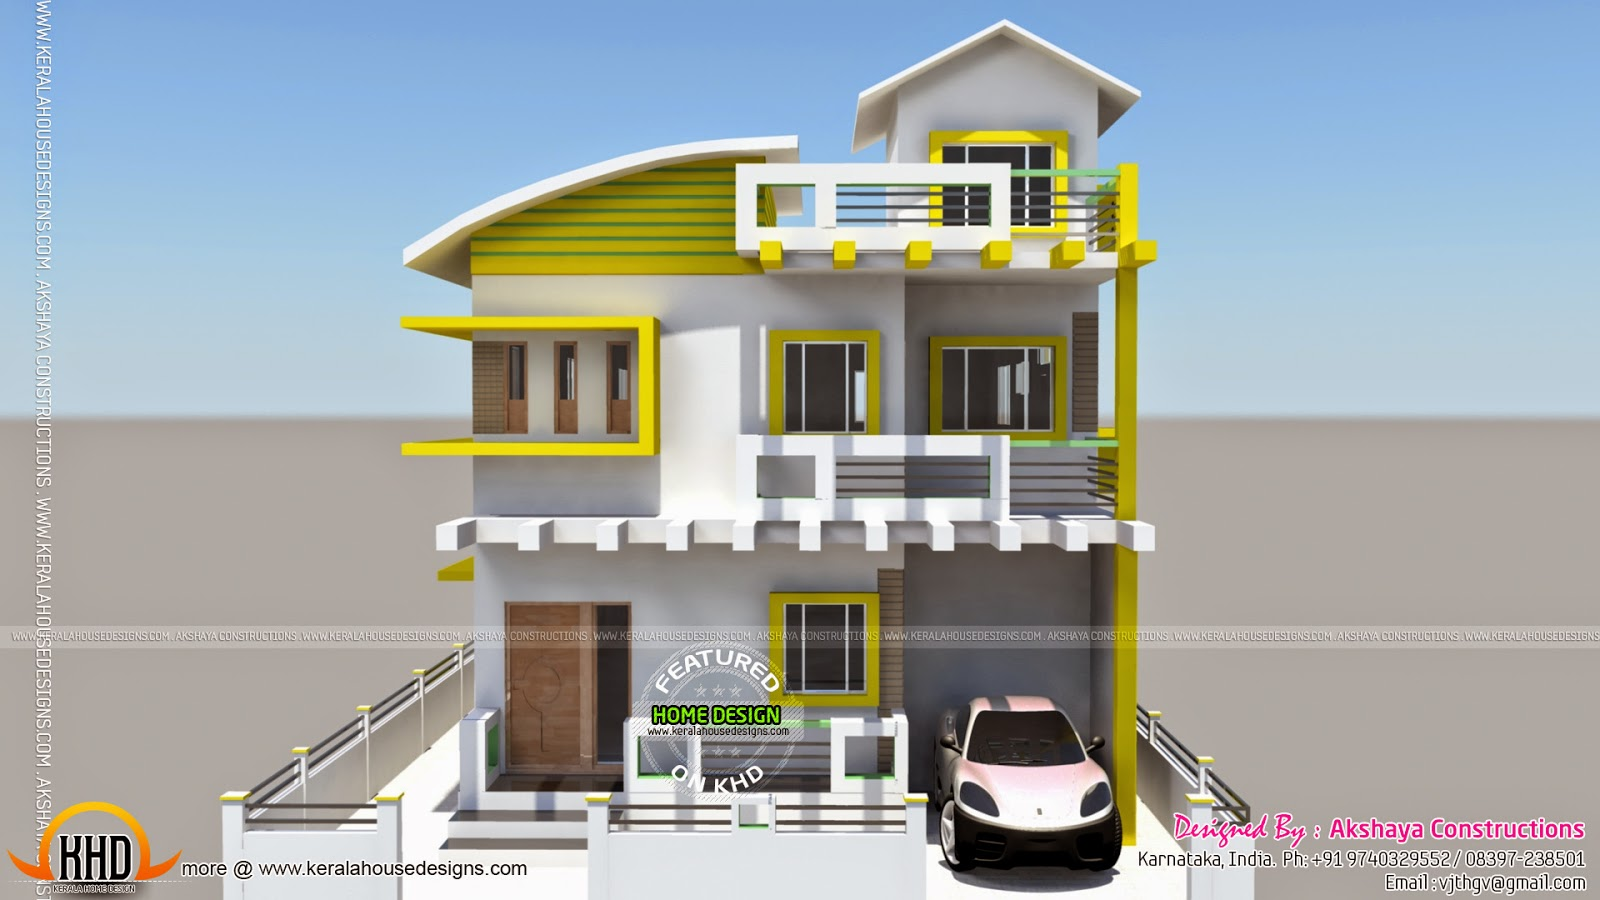 Karnataka home design. Karnataka home design   Kerala home design   Bloglovin